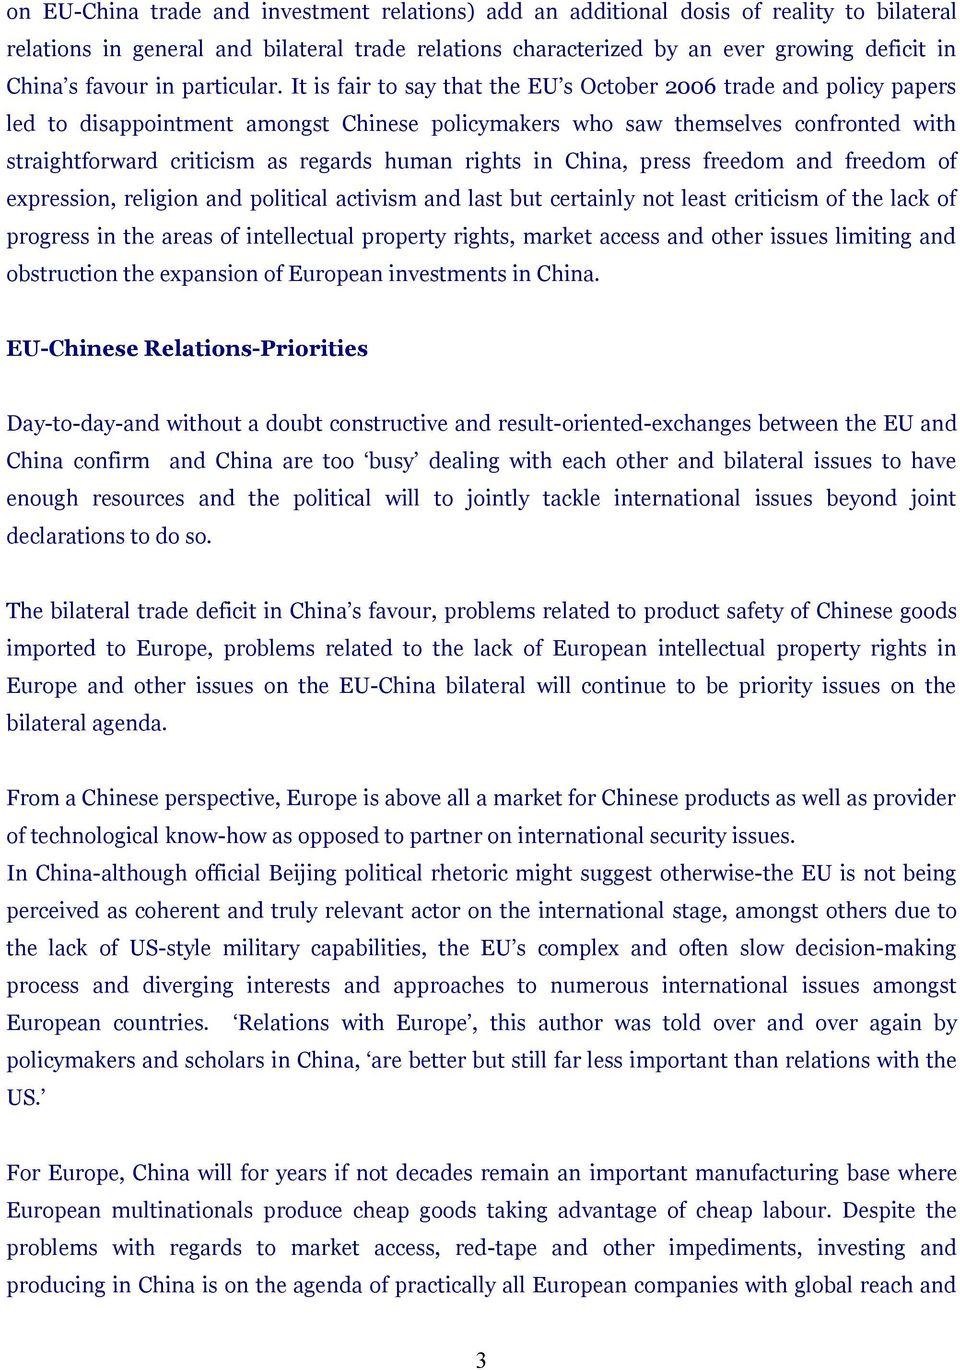 It is fair to say that the EU s October 2006 trade and policy papers led to disappointment amongst Chinese policymakers who saw themselves confronted with straightforward criticism as regards human